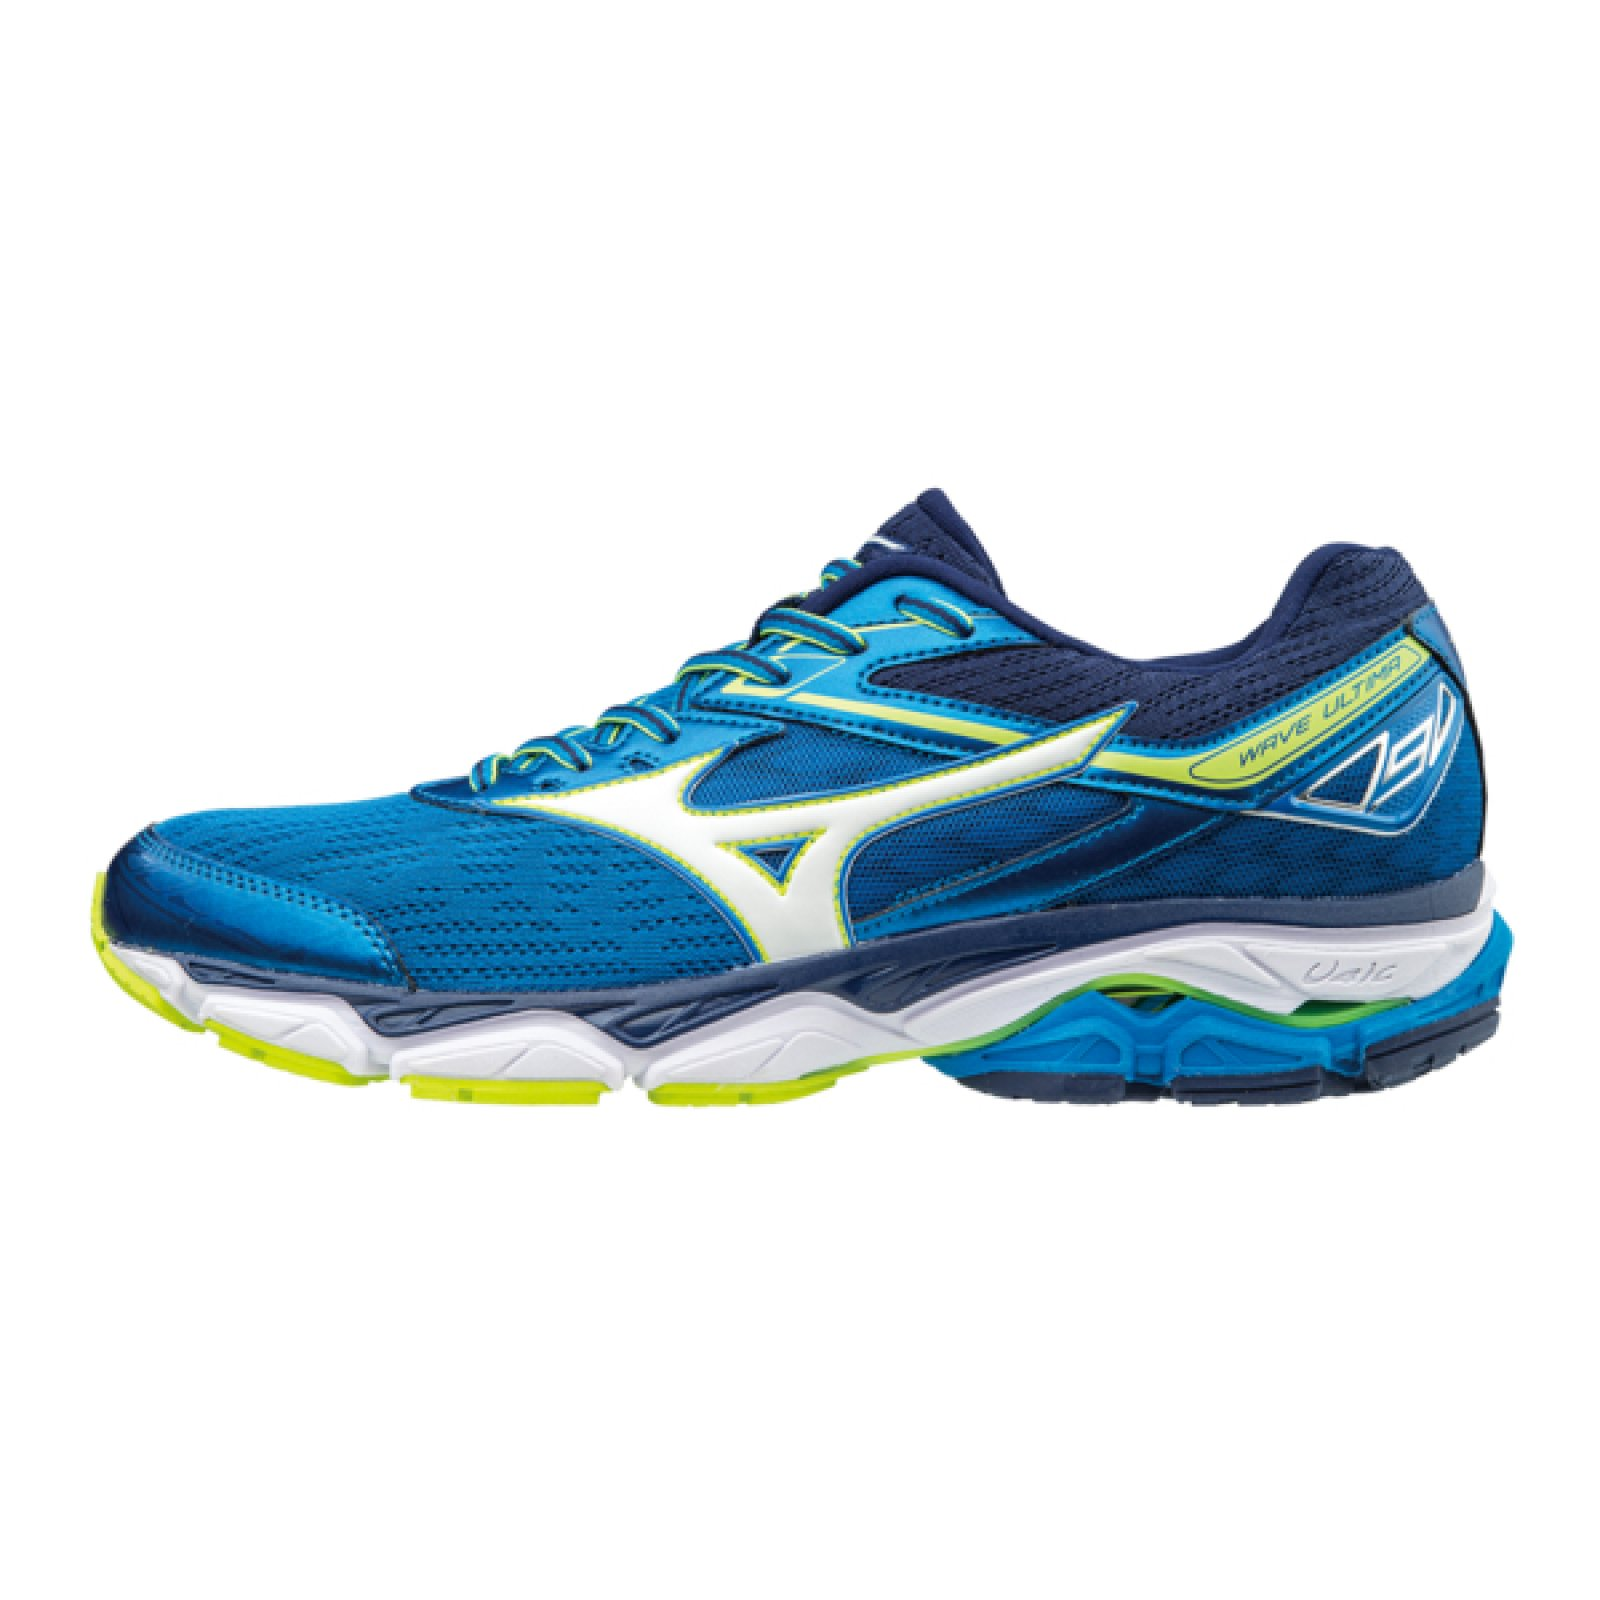 Mizuno Wave Ultima 9 J1GC170902 EUR 42,5